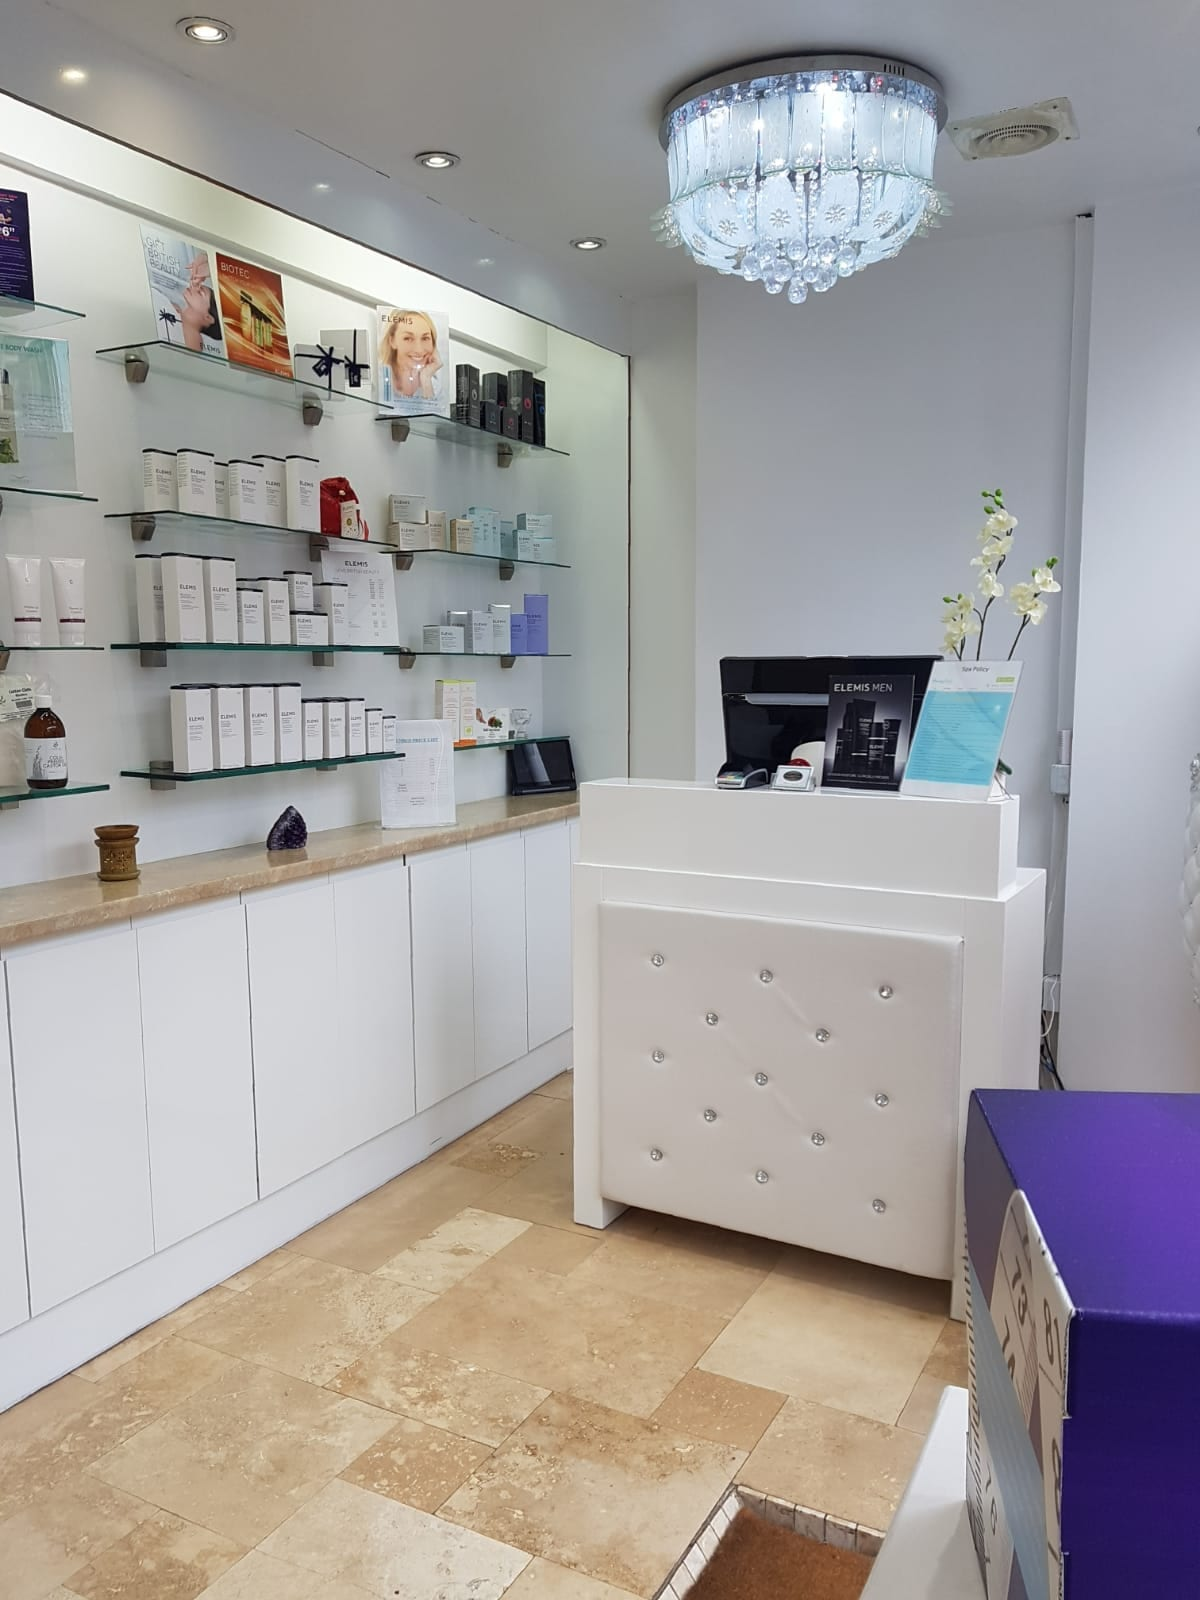 Image of City Skin Clinic in Crouch End